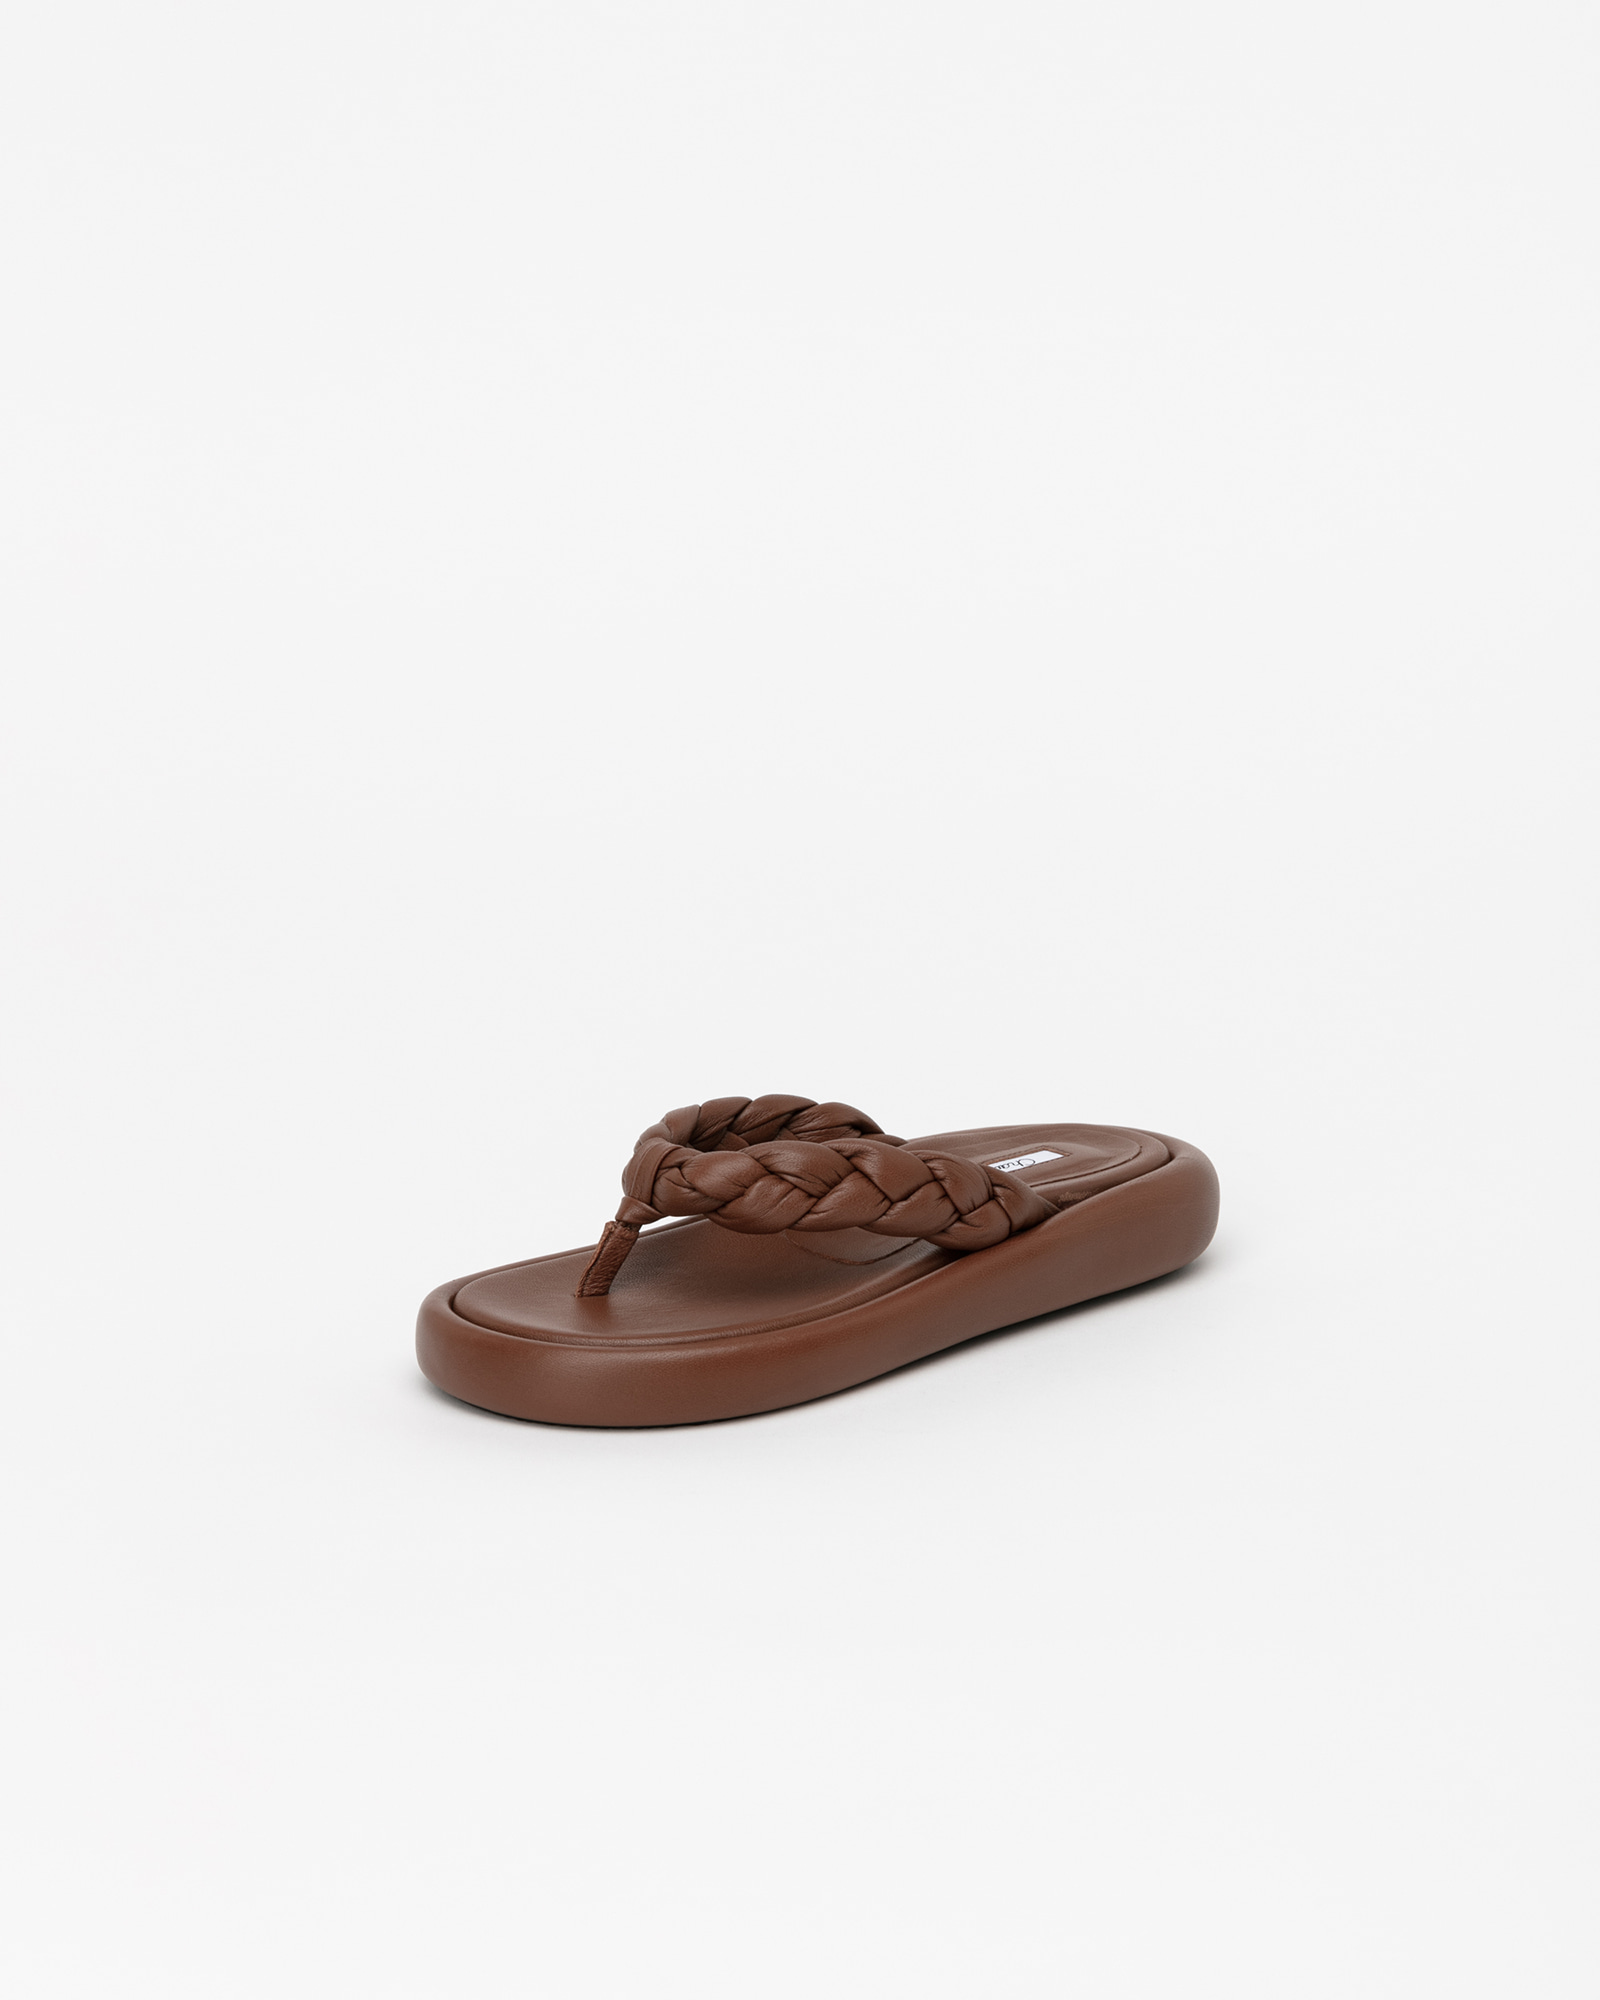 Dakota Footbed Thong Slides in Cognac Brown